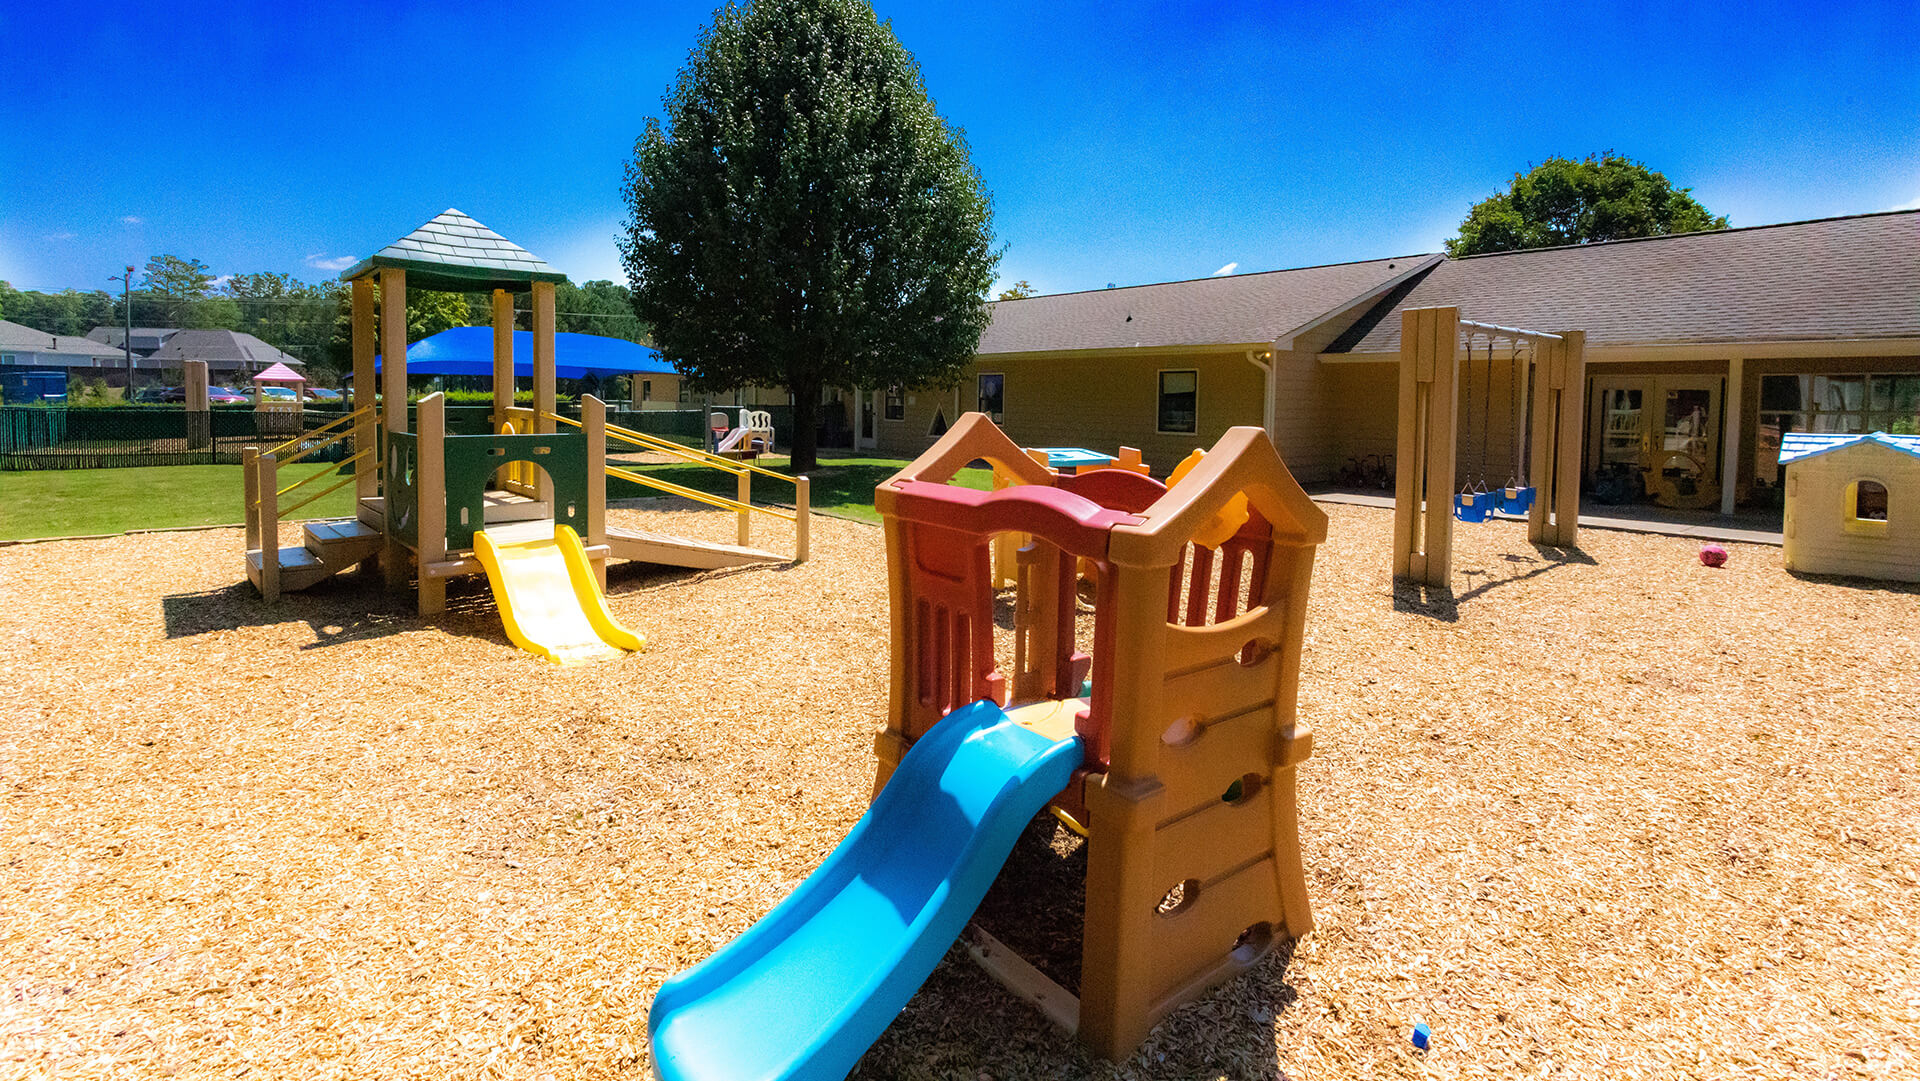 Toddler 2 Playground - Mt. Elizabeth Academy, Daycare, preschool, Kennesaw Christian school, private school